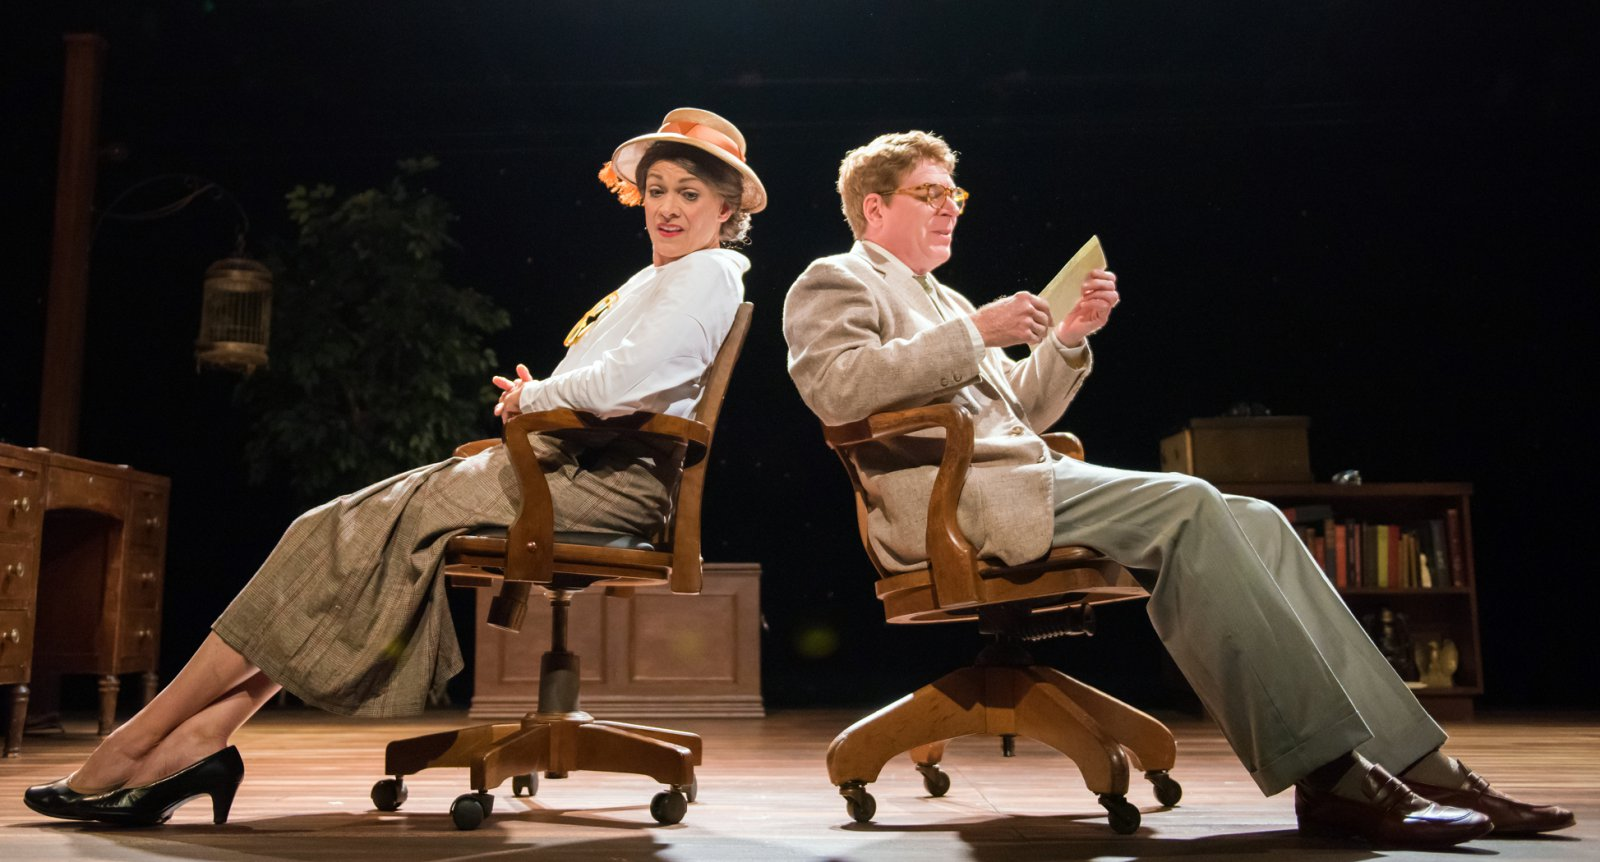 Carrie Hitchcock as Elizabeth Bishop and Norman Moses as Robert Lowell